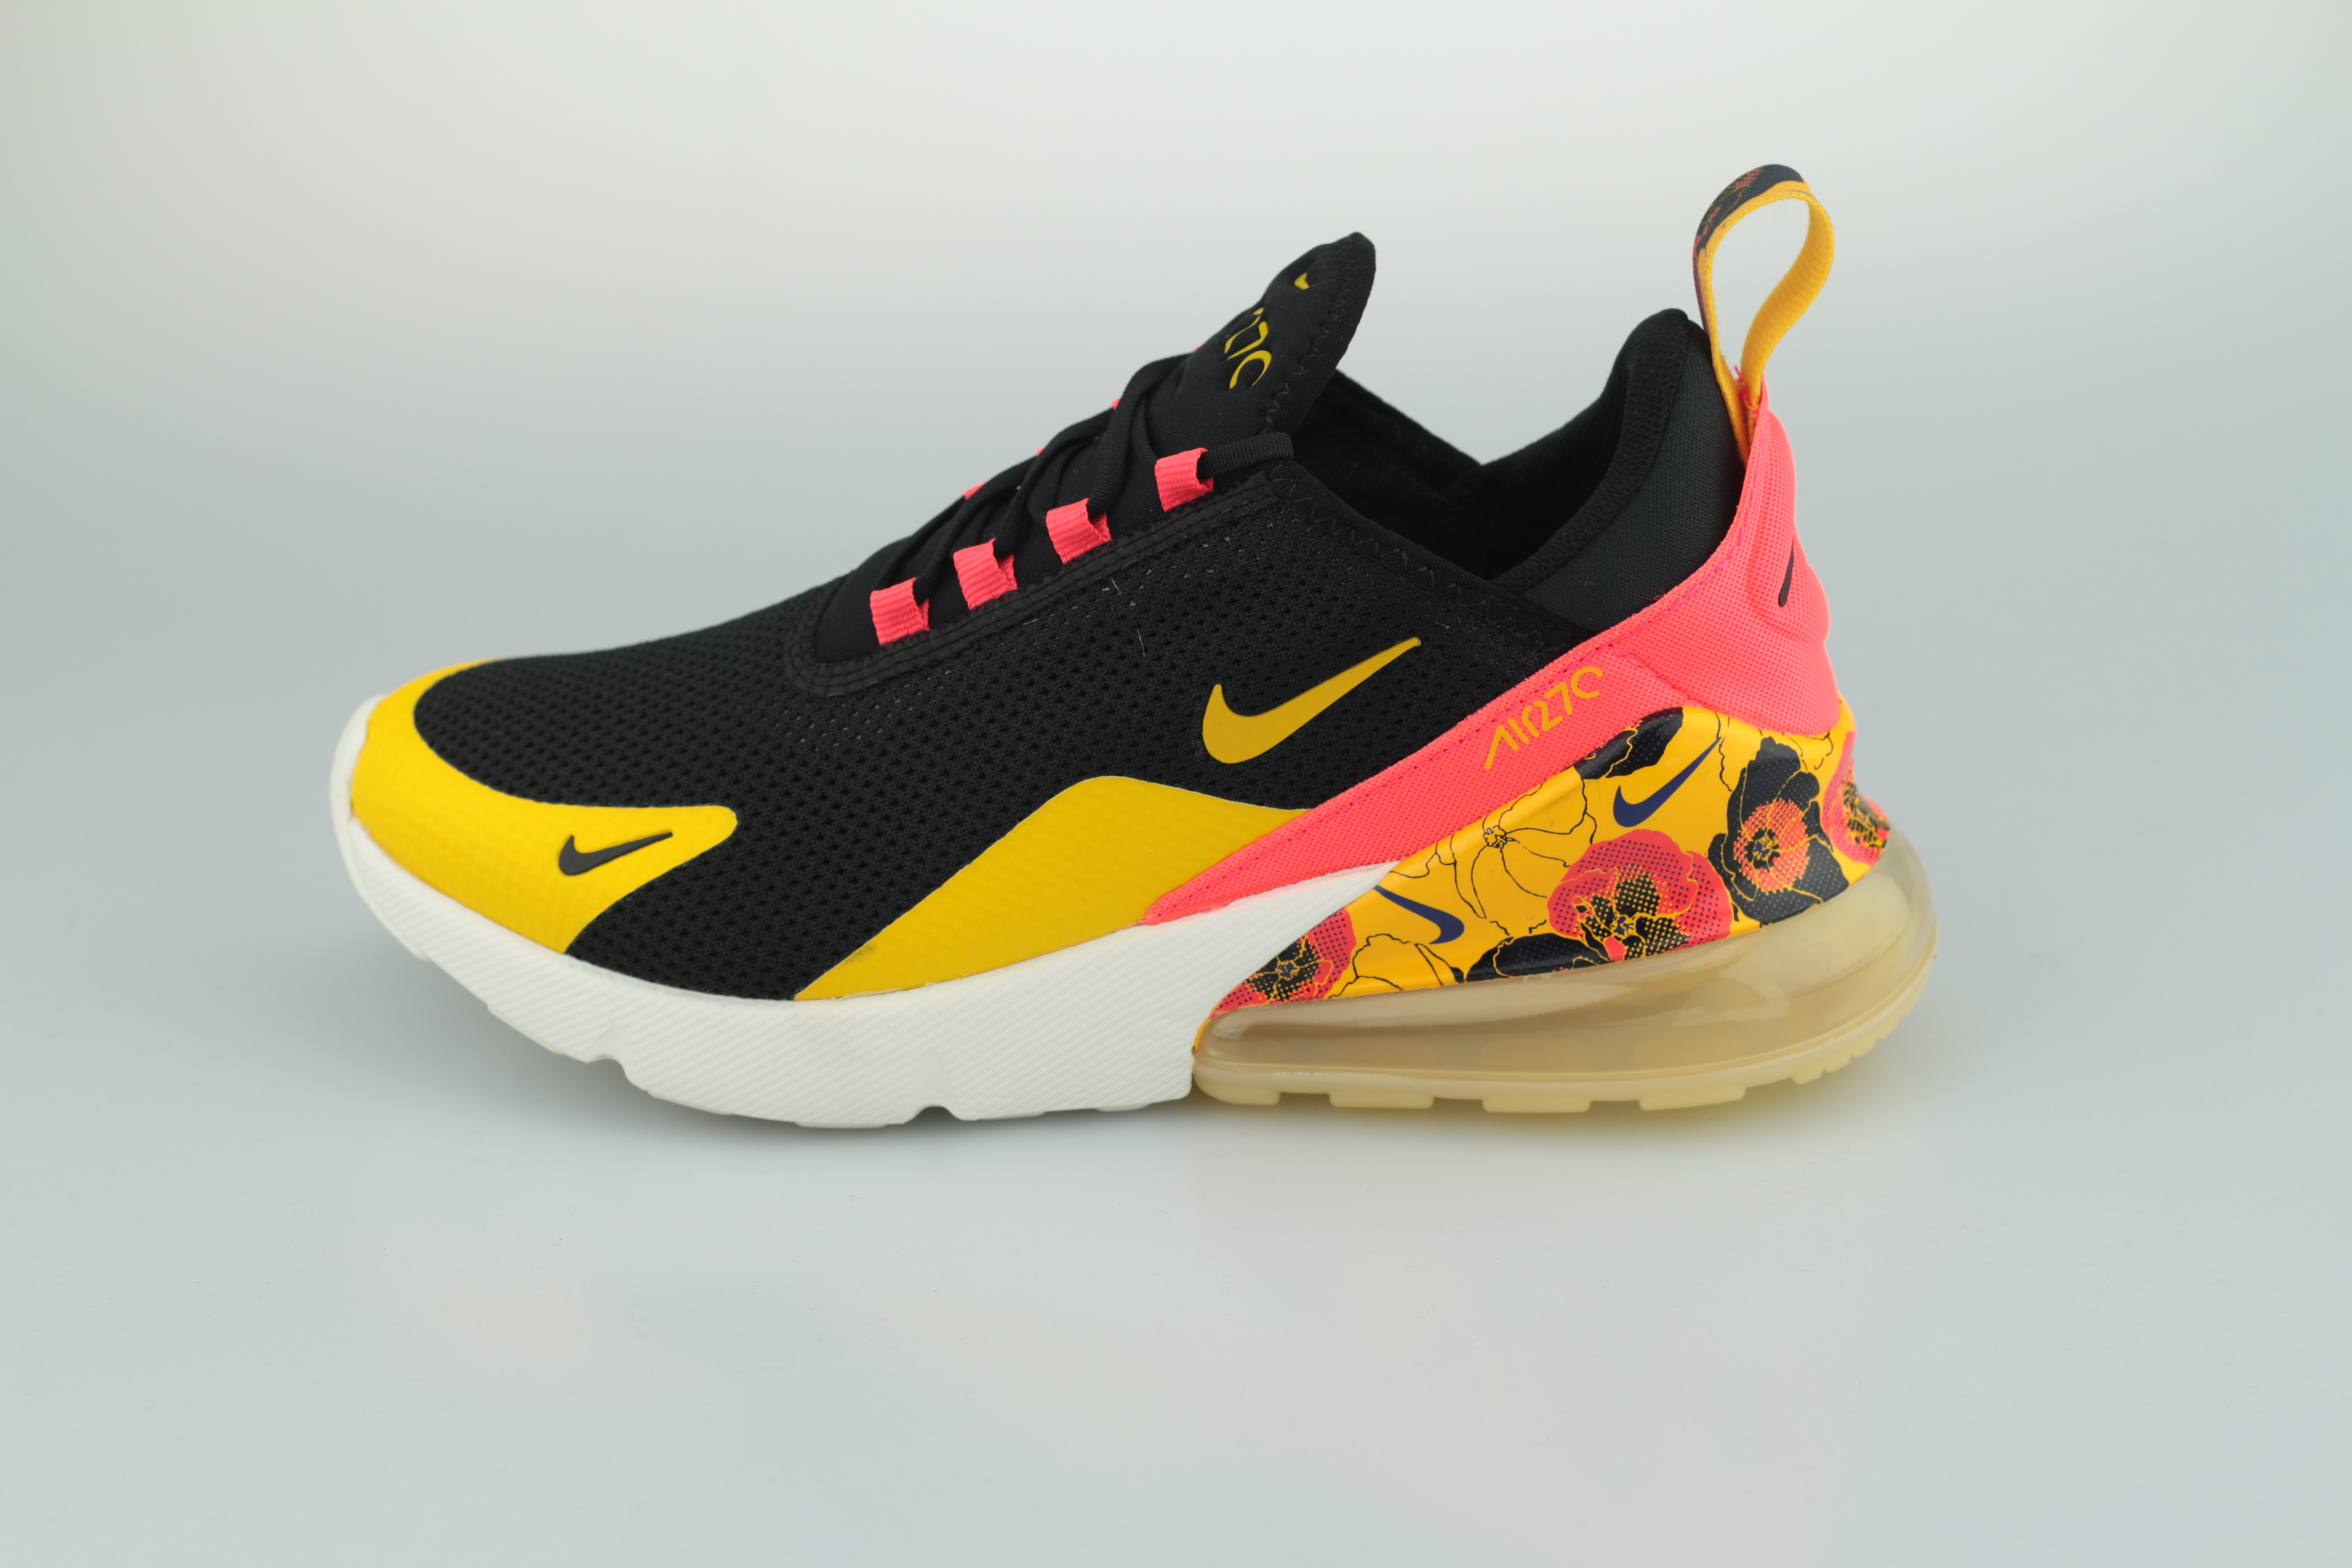 crazy price buy best differently Wmns Air Max 270 SE Floral (Black / University Gold - Bright Crimson)